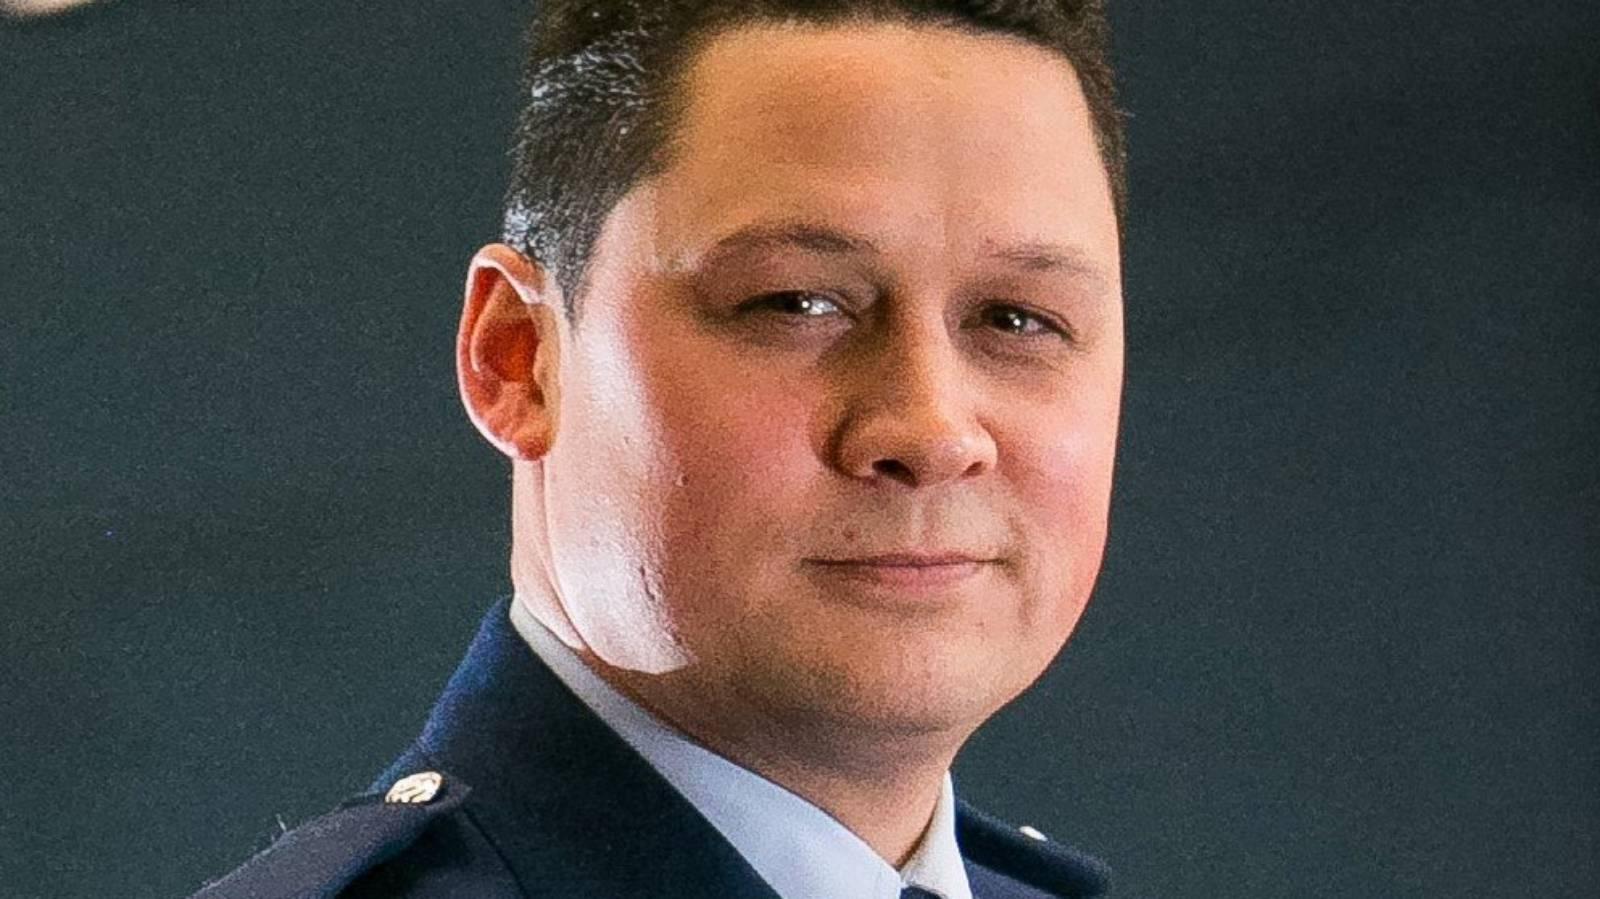 Police officer climbed into ex-partner's property